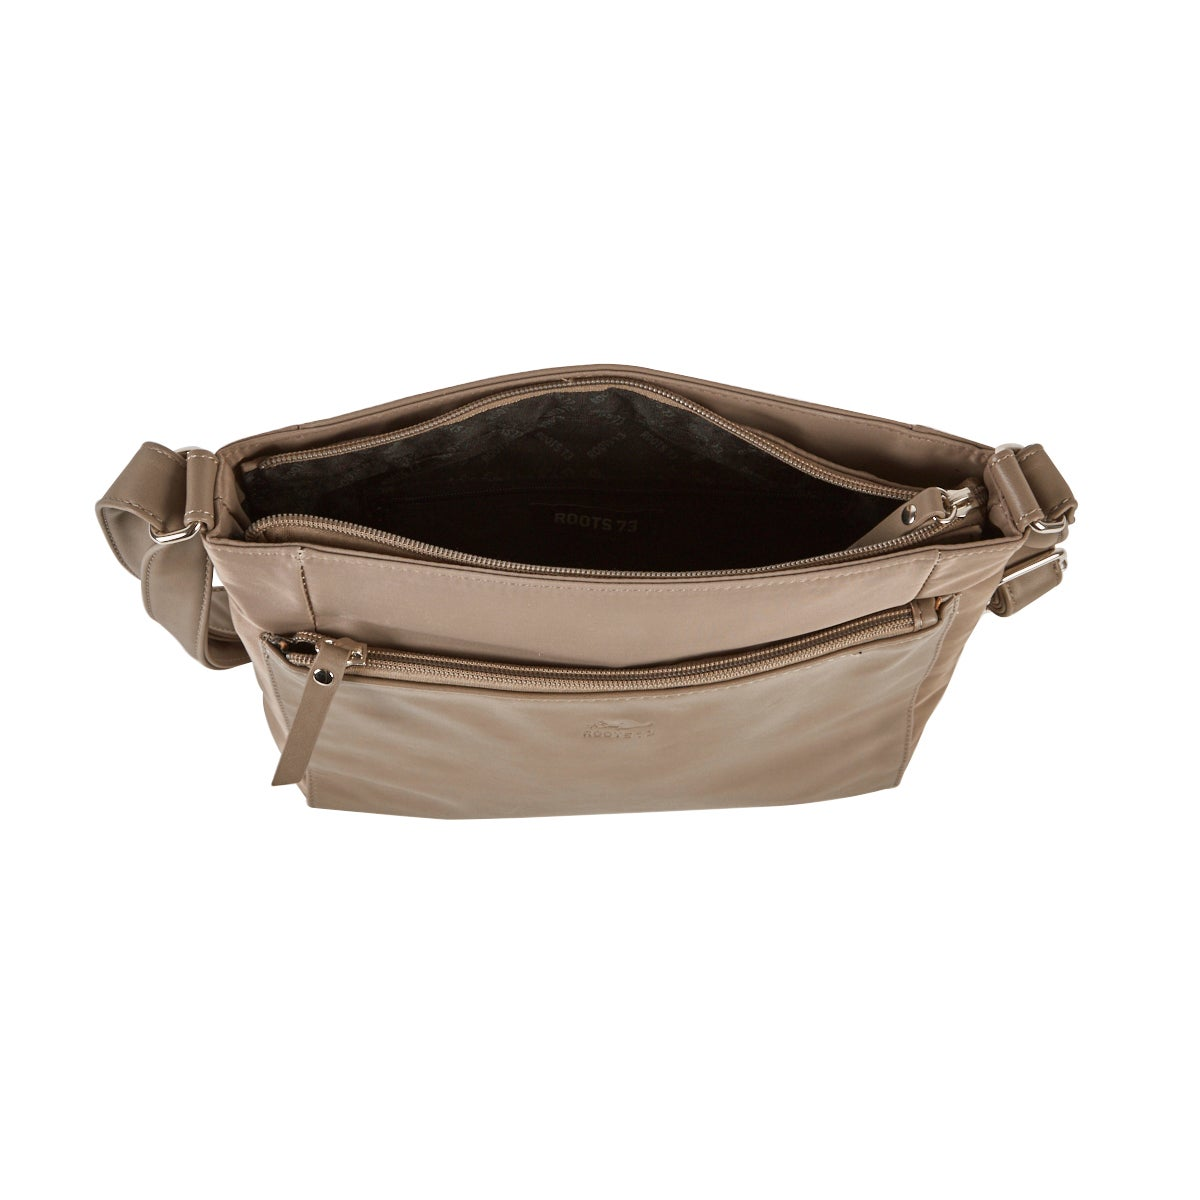 Lds Roots73 taupe top zip crossbody